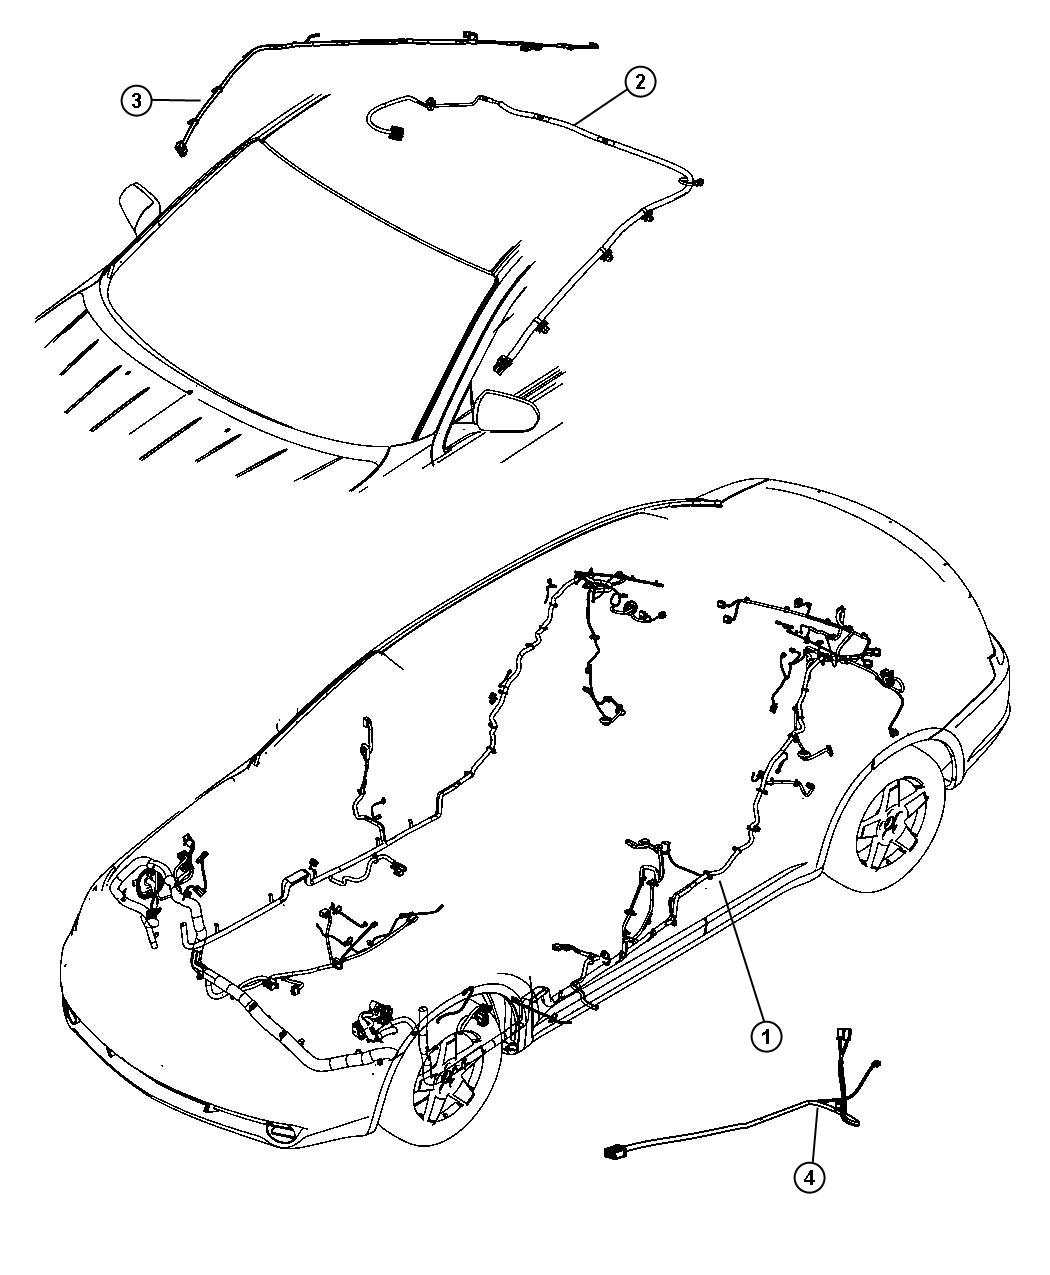 Chrysler Sebring Wiring Unified Body After 01 29 07